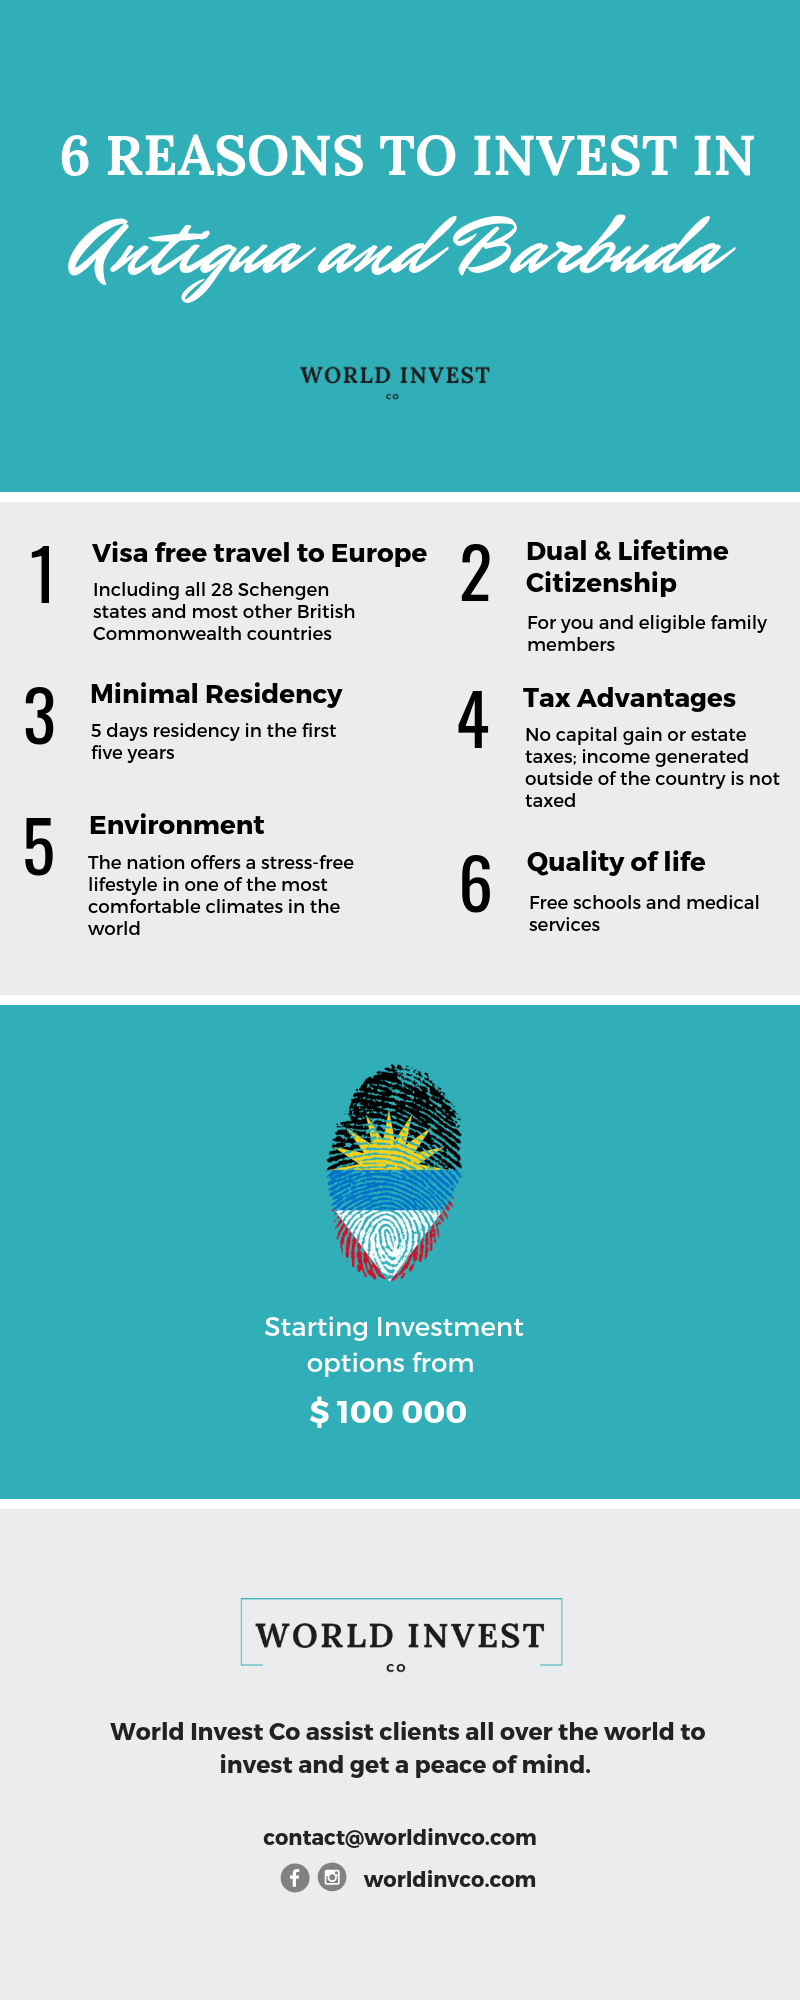 6 reasons why you should invest in Antigua and Barbuda